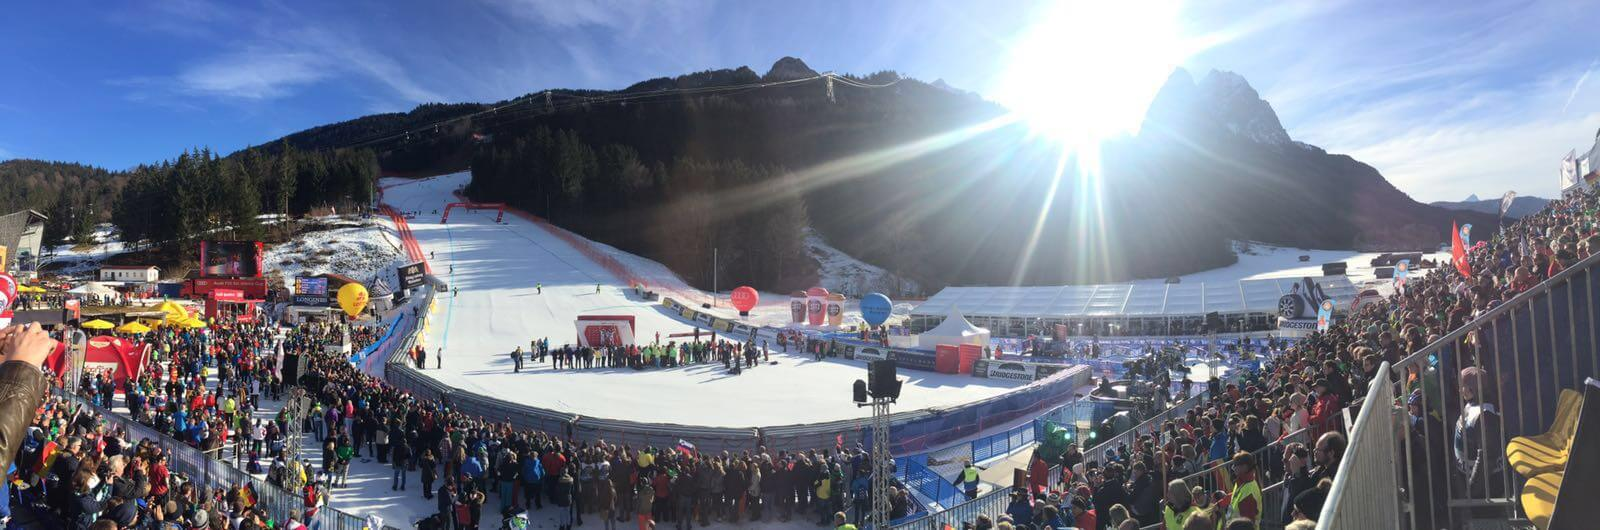 fis world cup garmisch